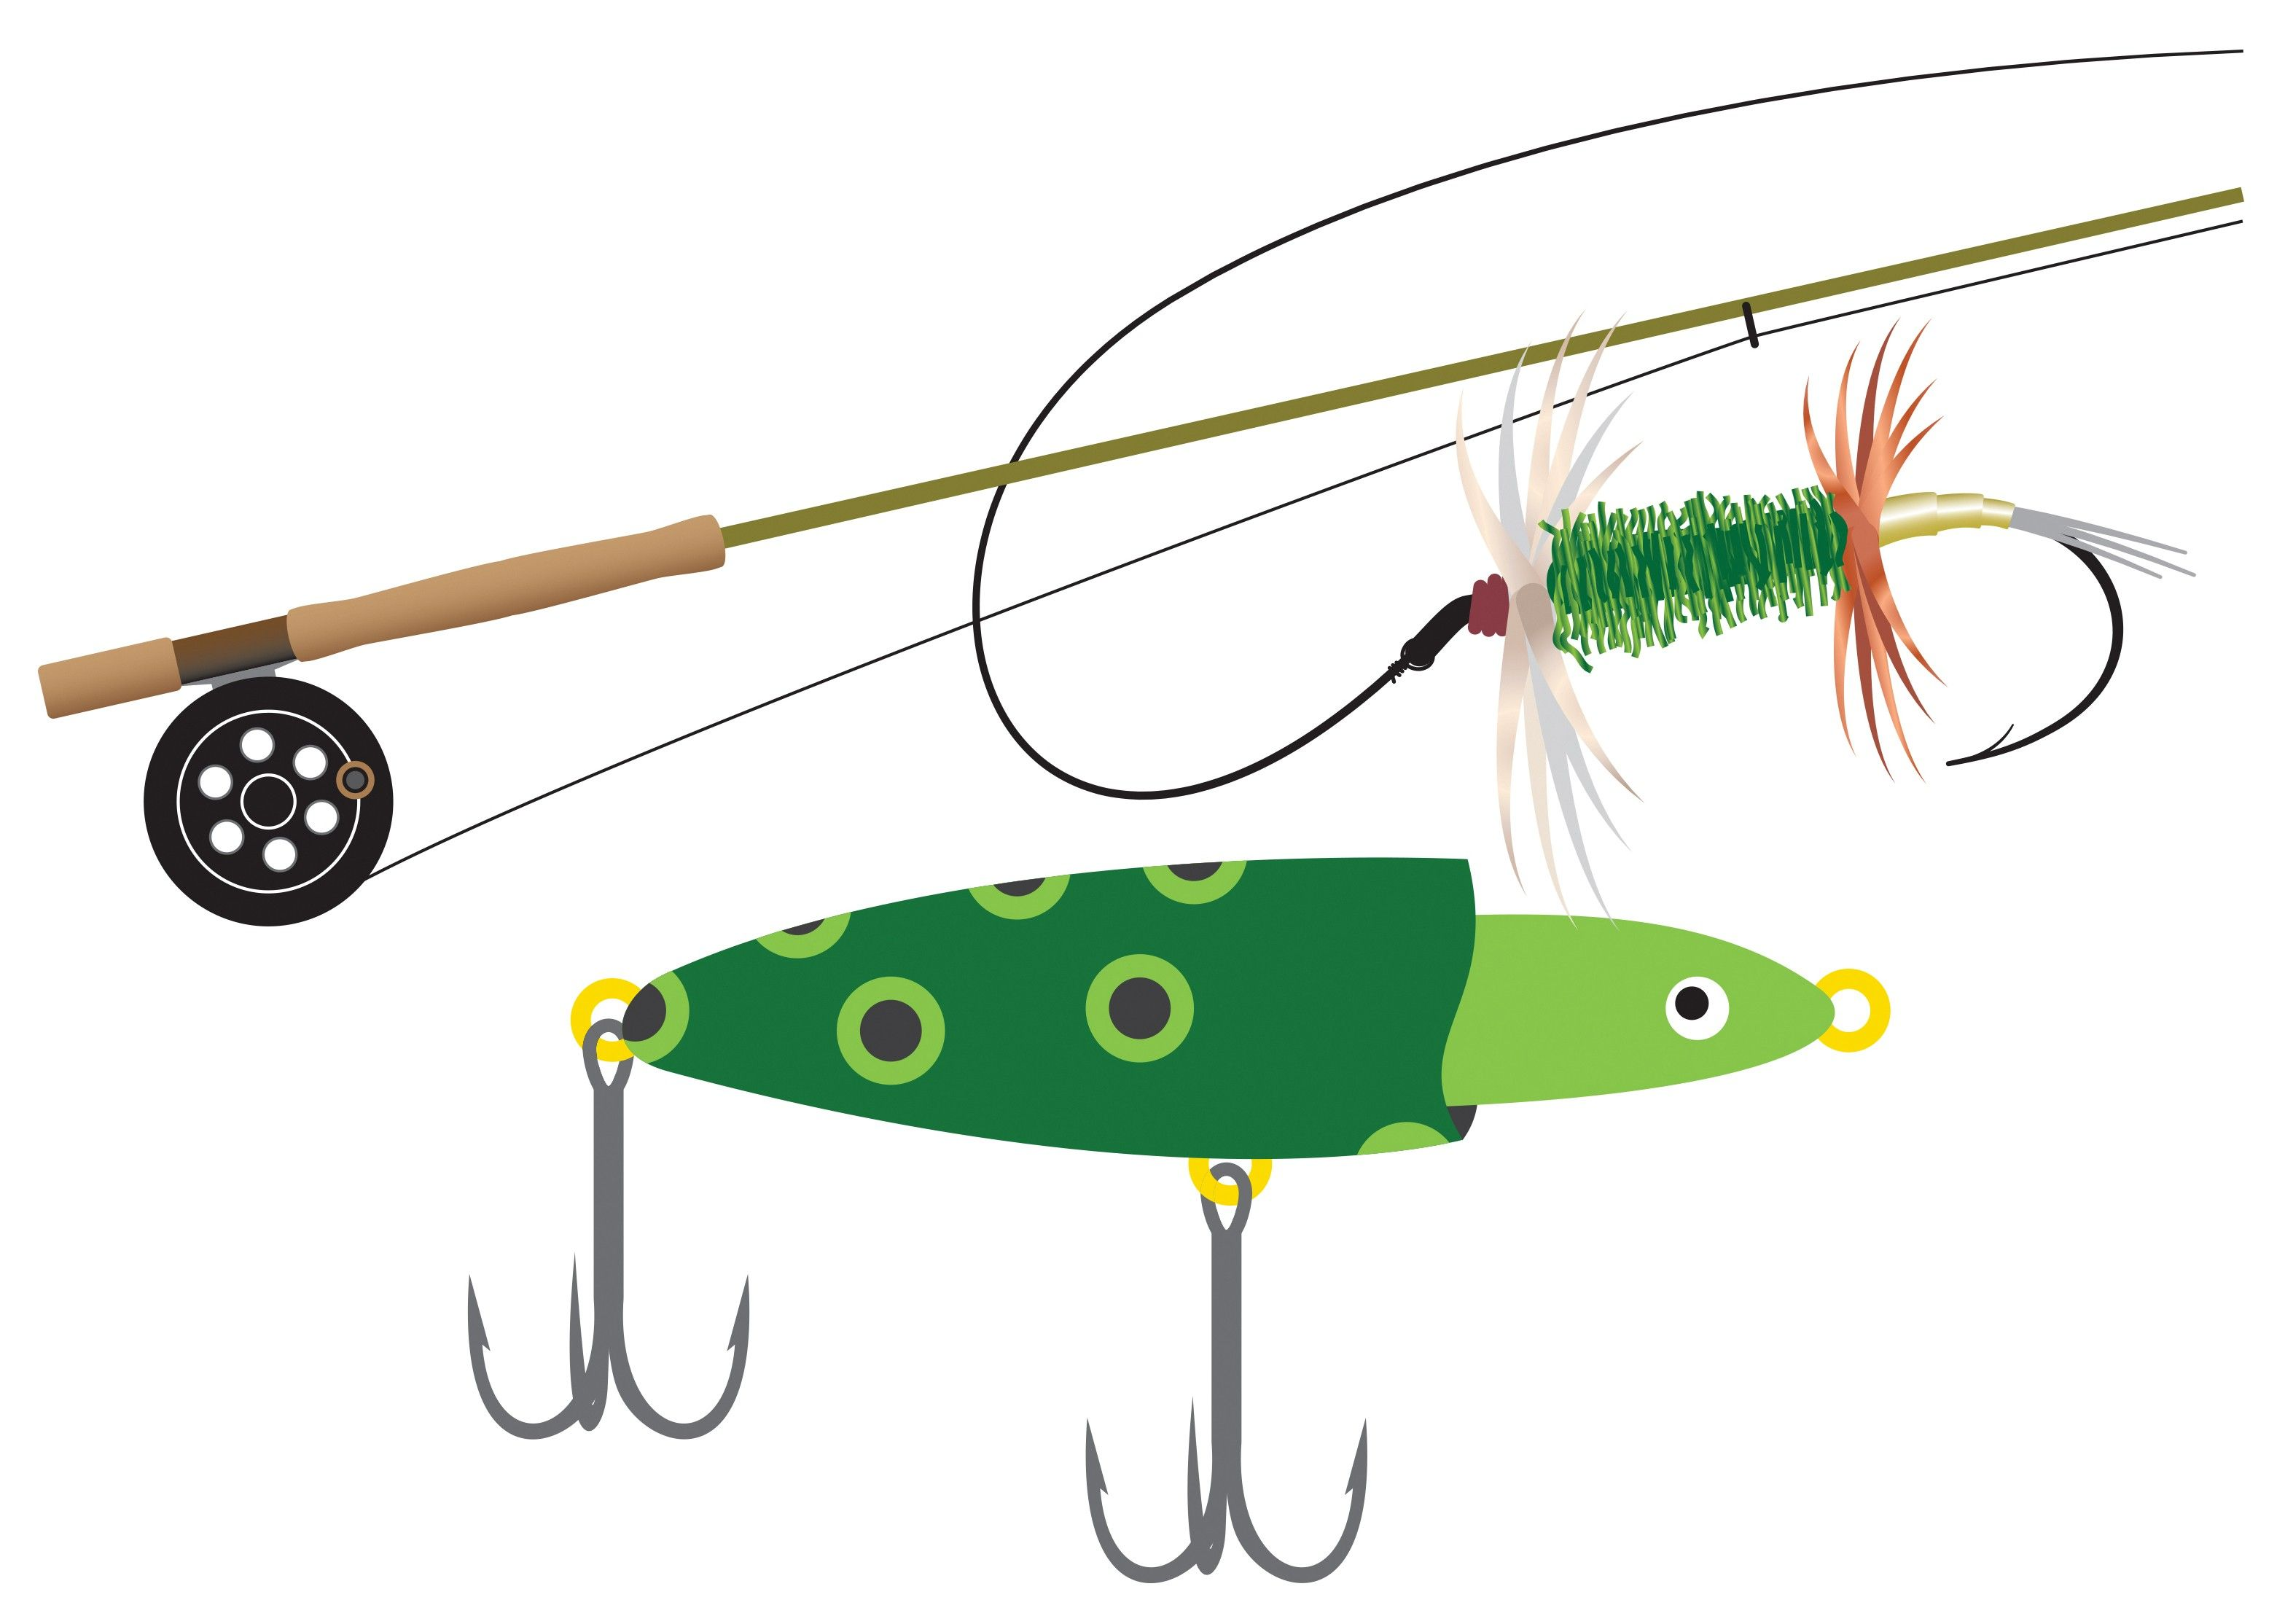 A drawing of a fishing pole and lure.